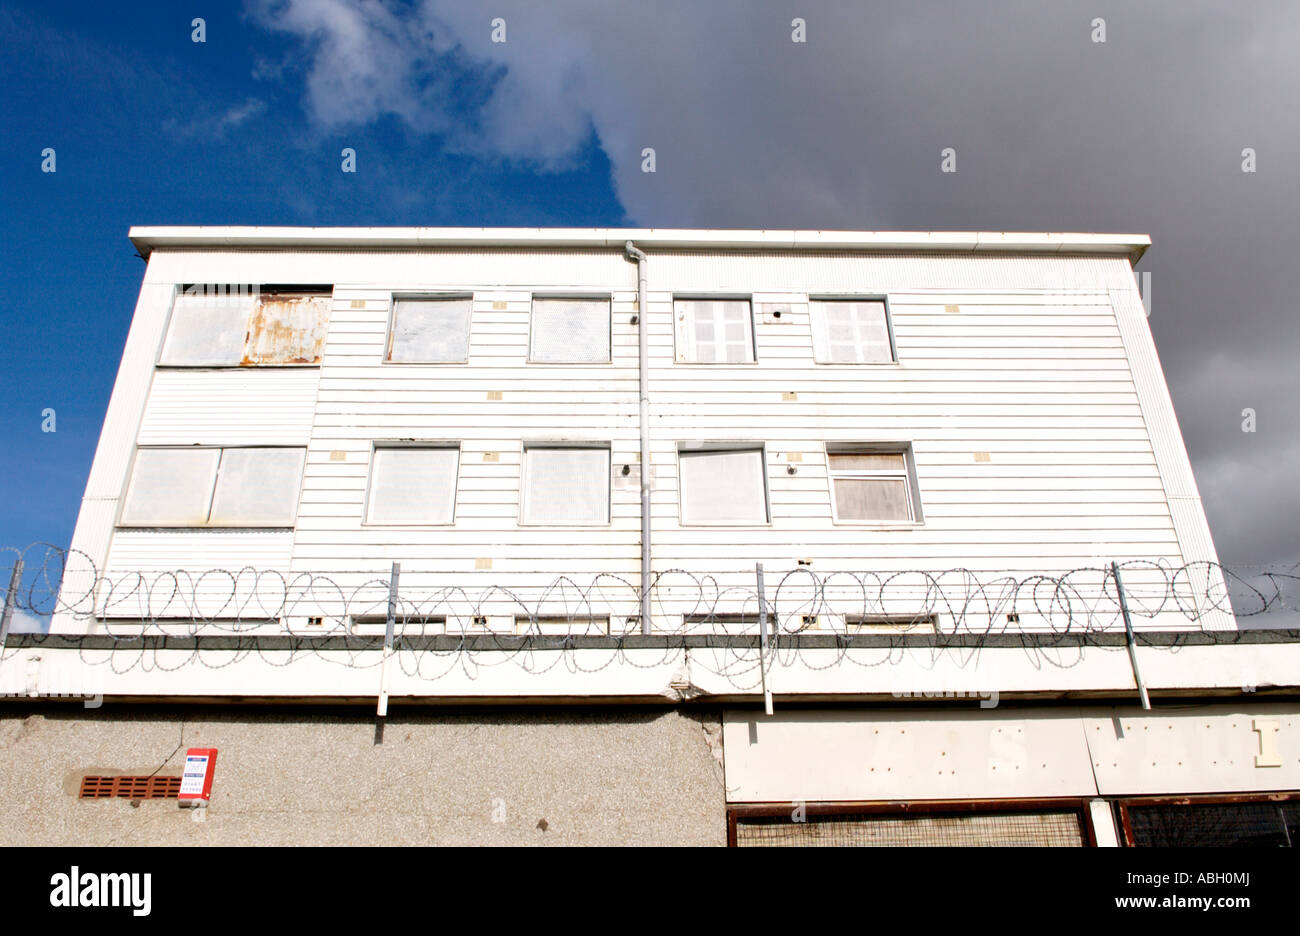 Derelict Block Of Flats Boarded Up On Run Down Shopping Centre With Running Wiring Under House Razor Wire Gurnos Estate Merthyr Tydfil South Wales Uk